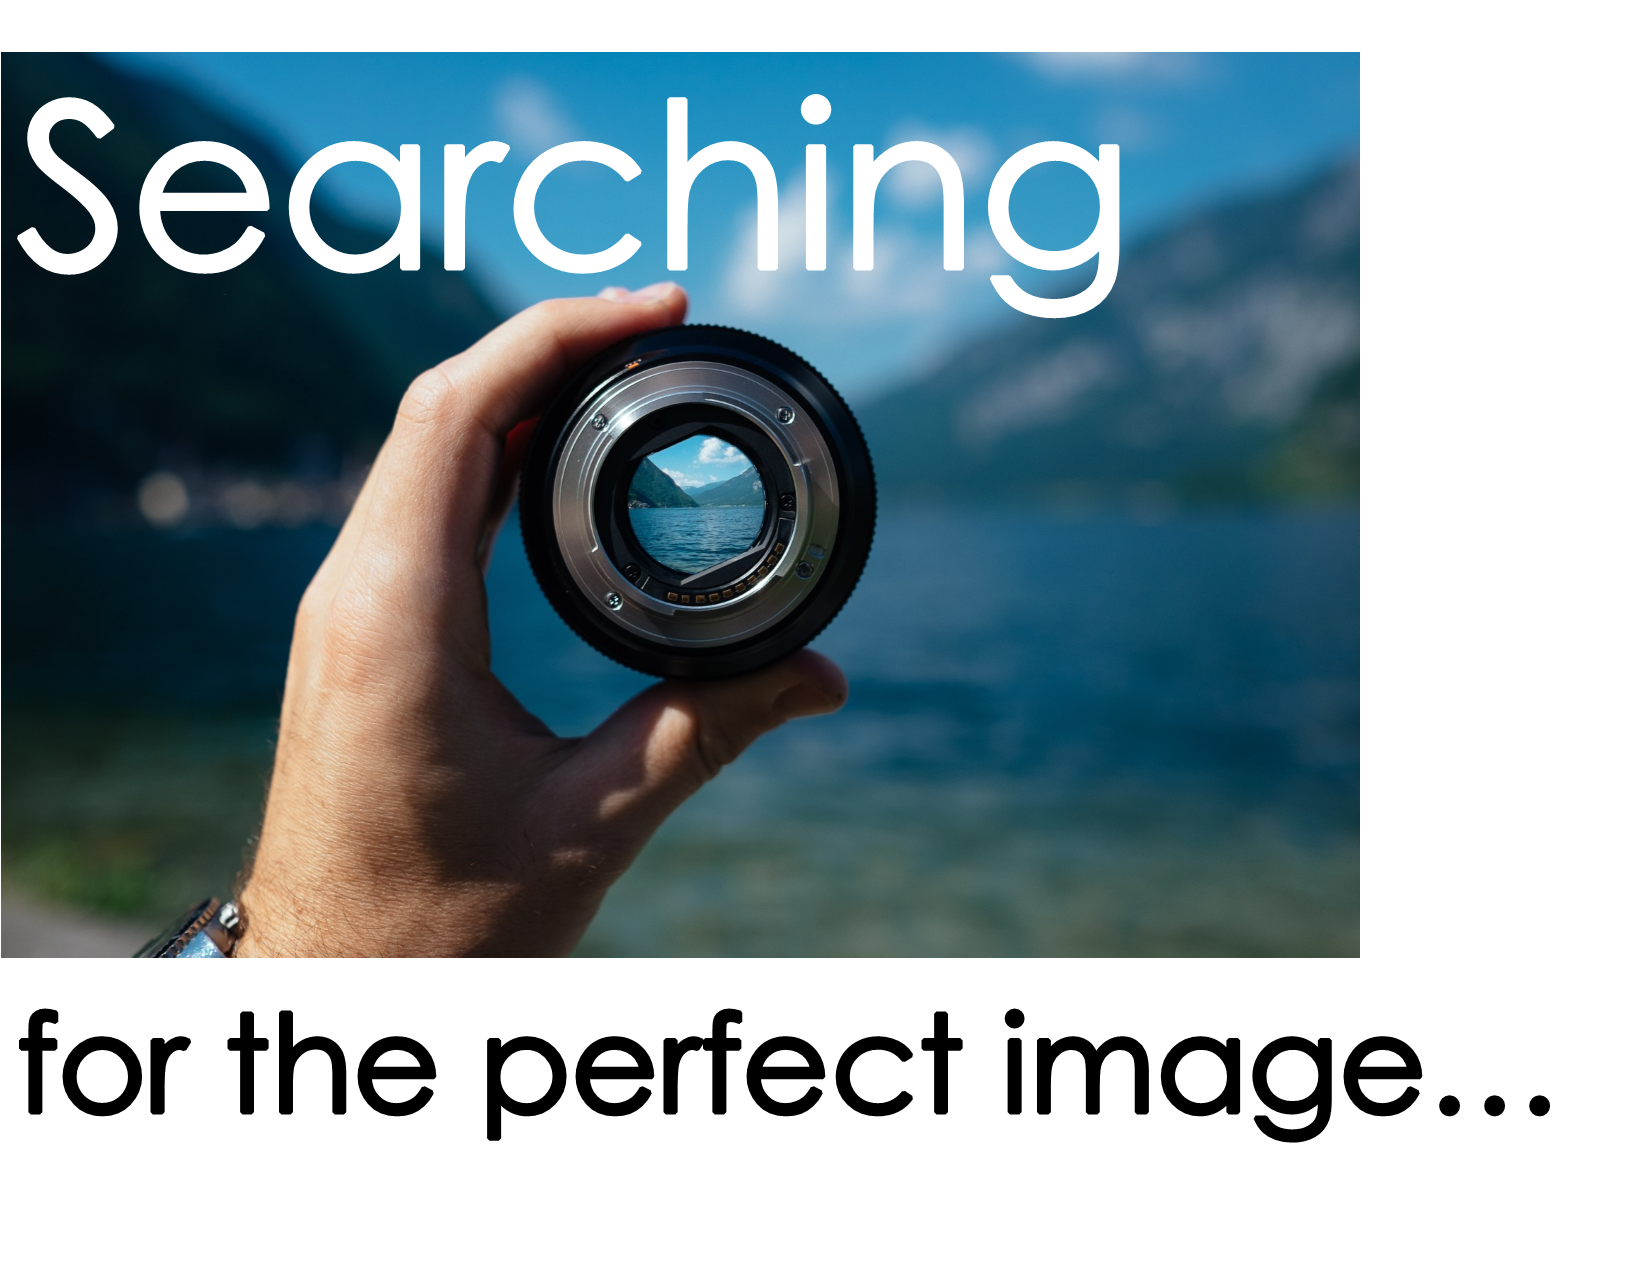 Searching for the perfect image photo graphic